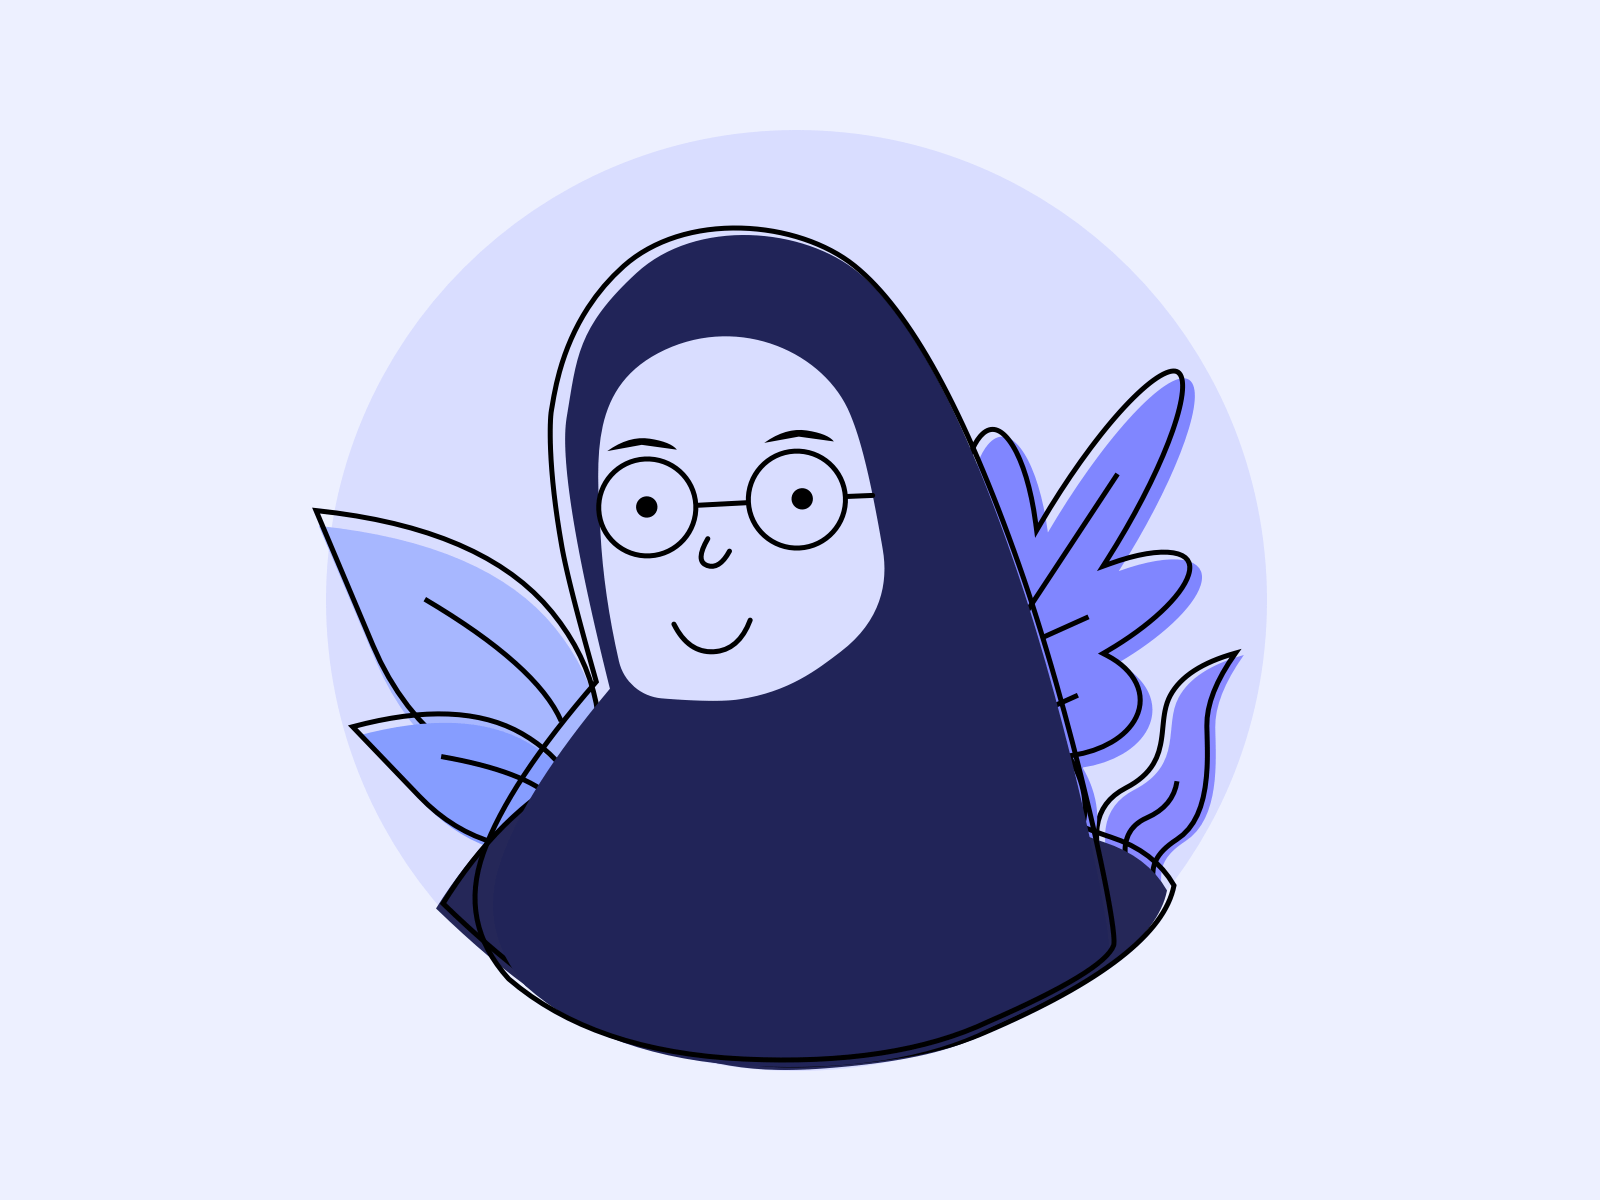 Under the right circumstances, these cute animals wouldn't hesitate to kill you dead. Anime Hijab Designs Themes Templates And Downloadable Graphic Elements On Dribbble